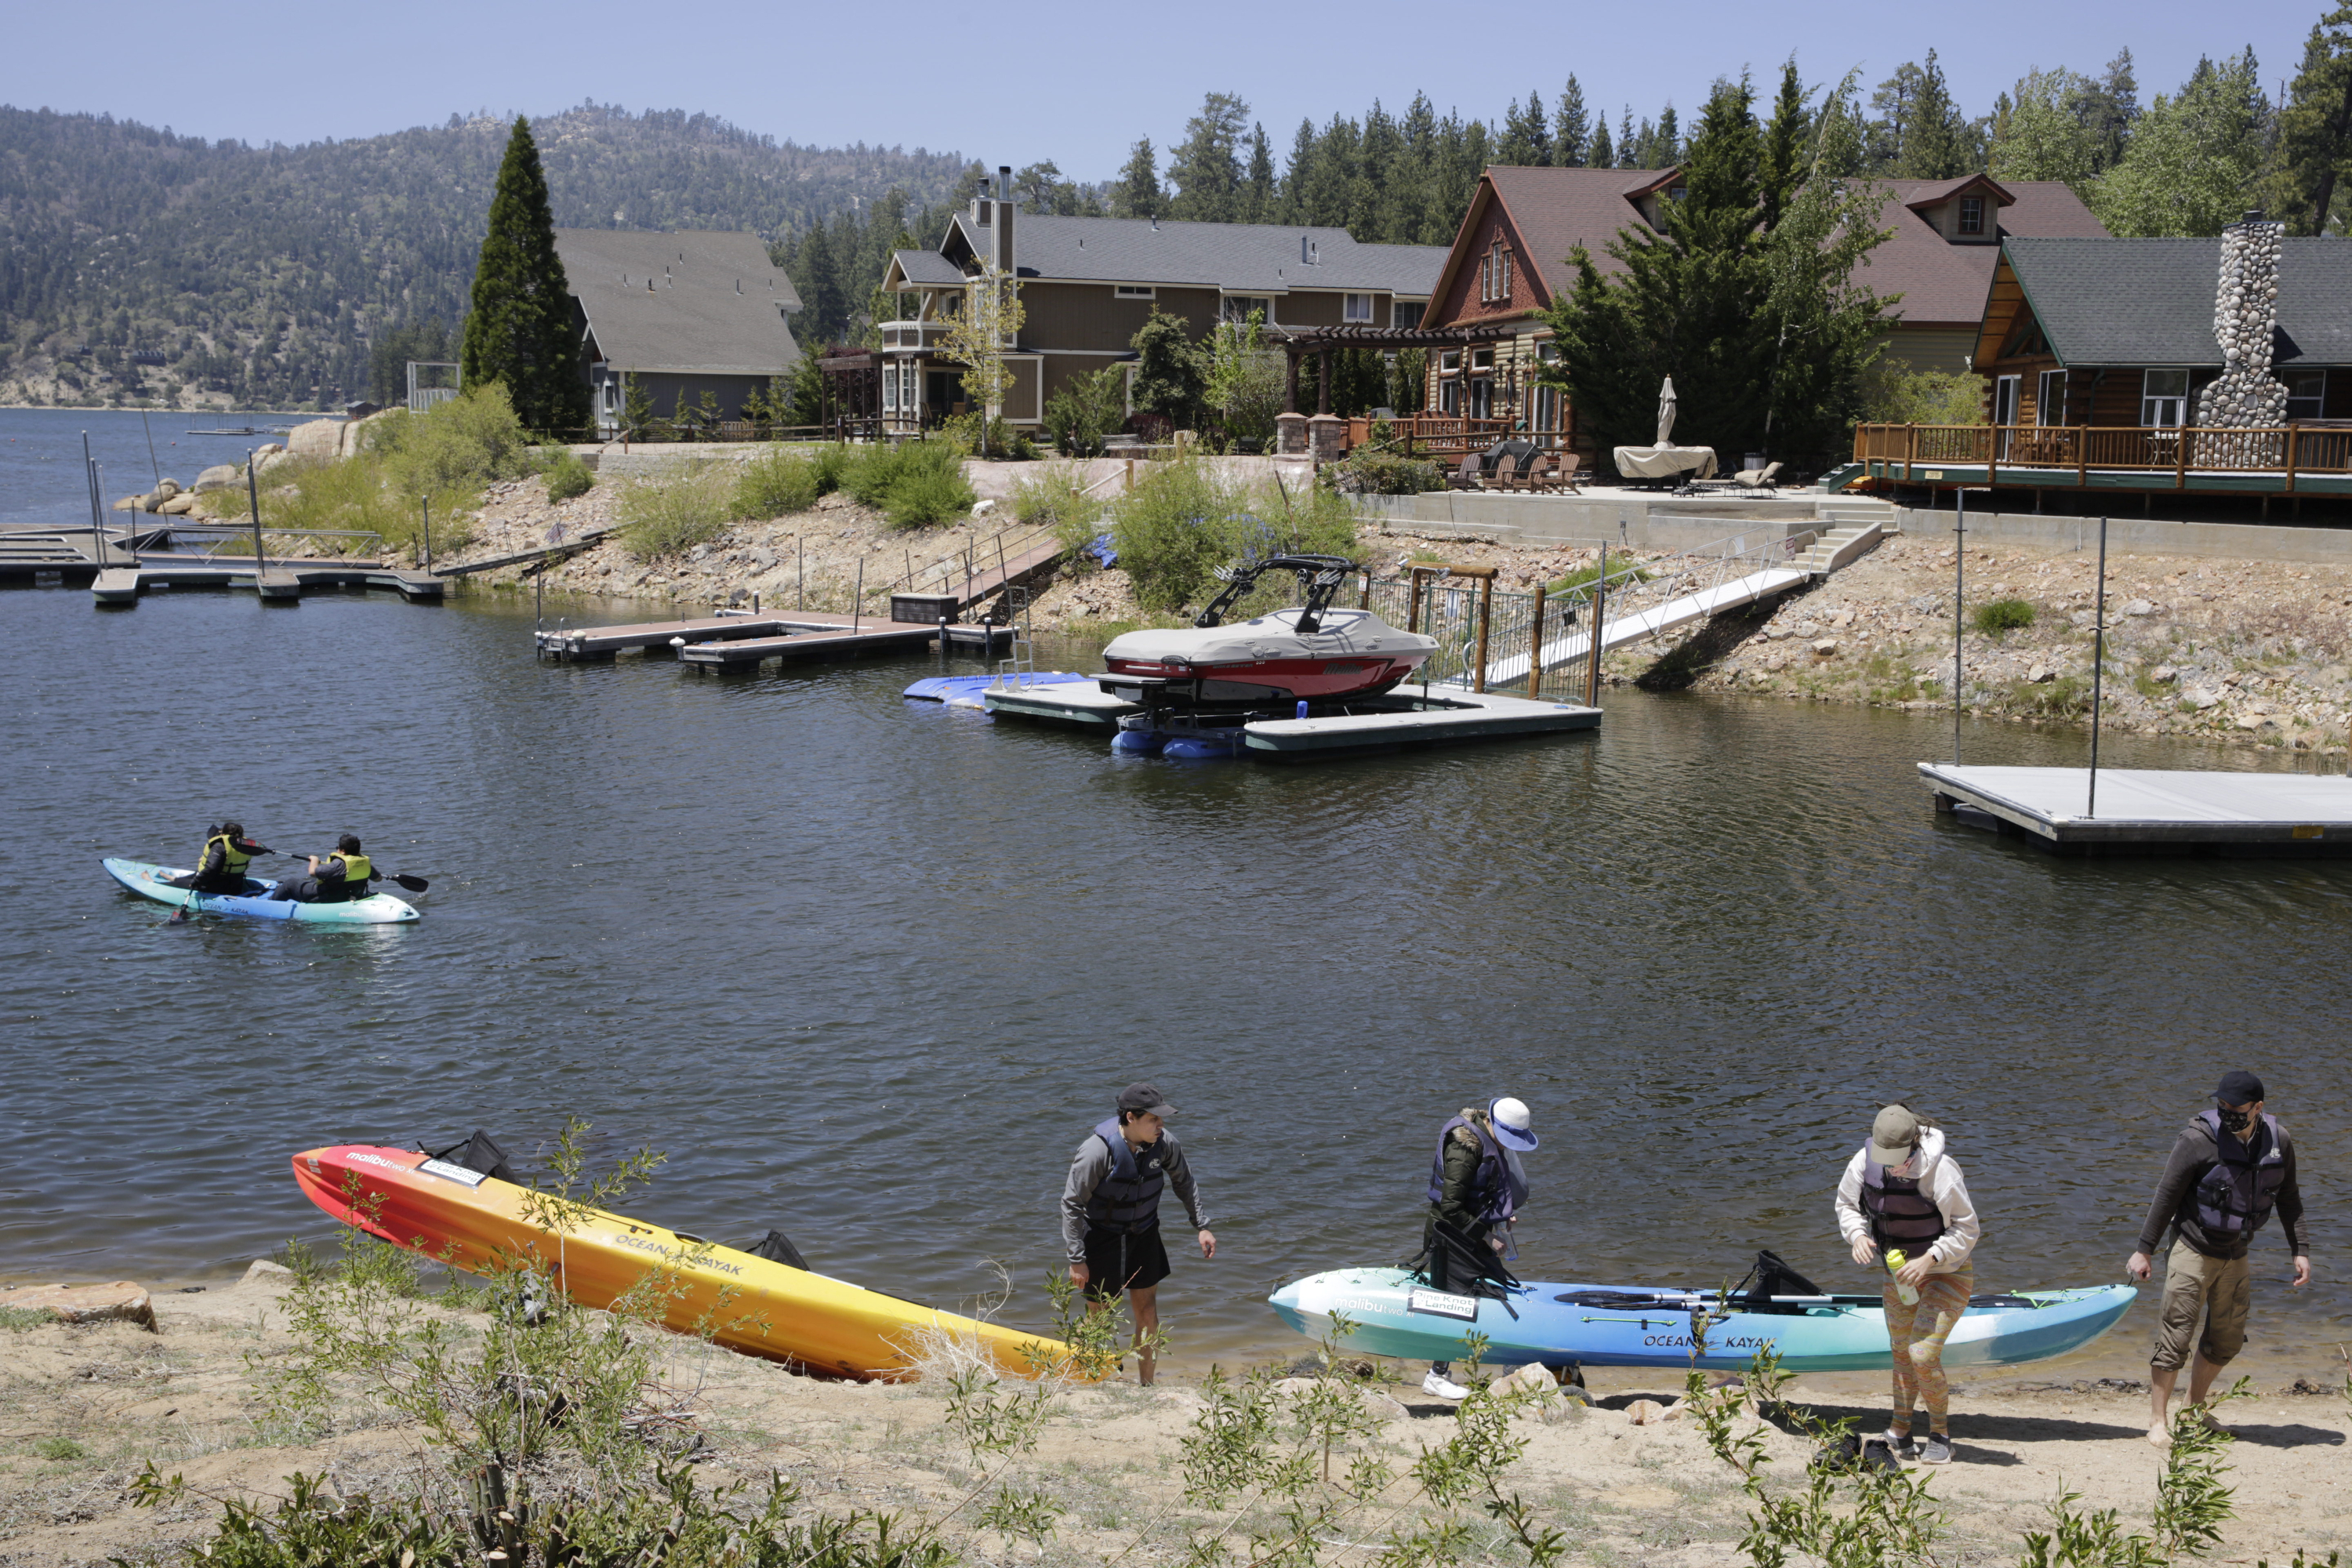 City of Big Bear Lake to Stop Enforcing State's Coronavirus Restrictions